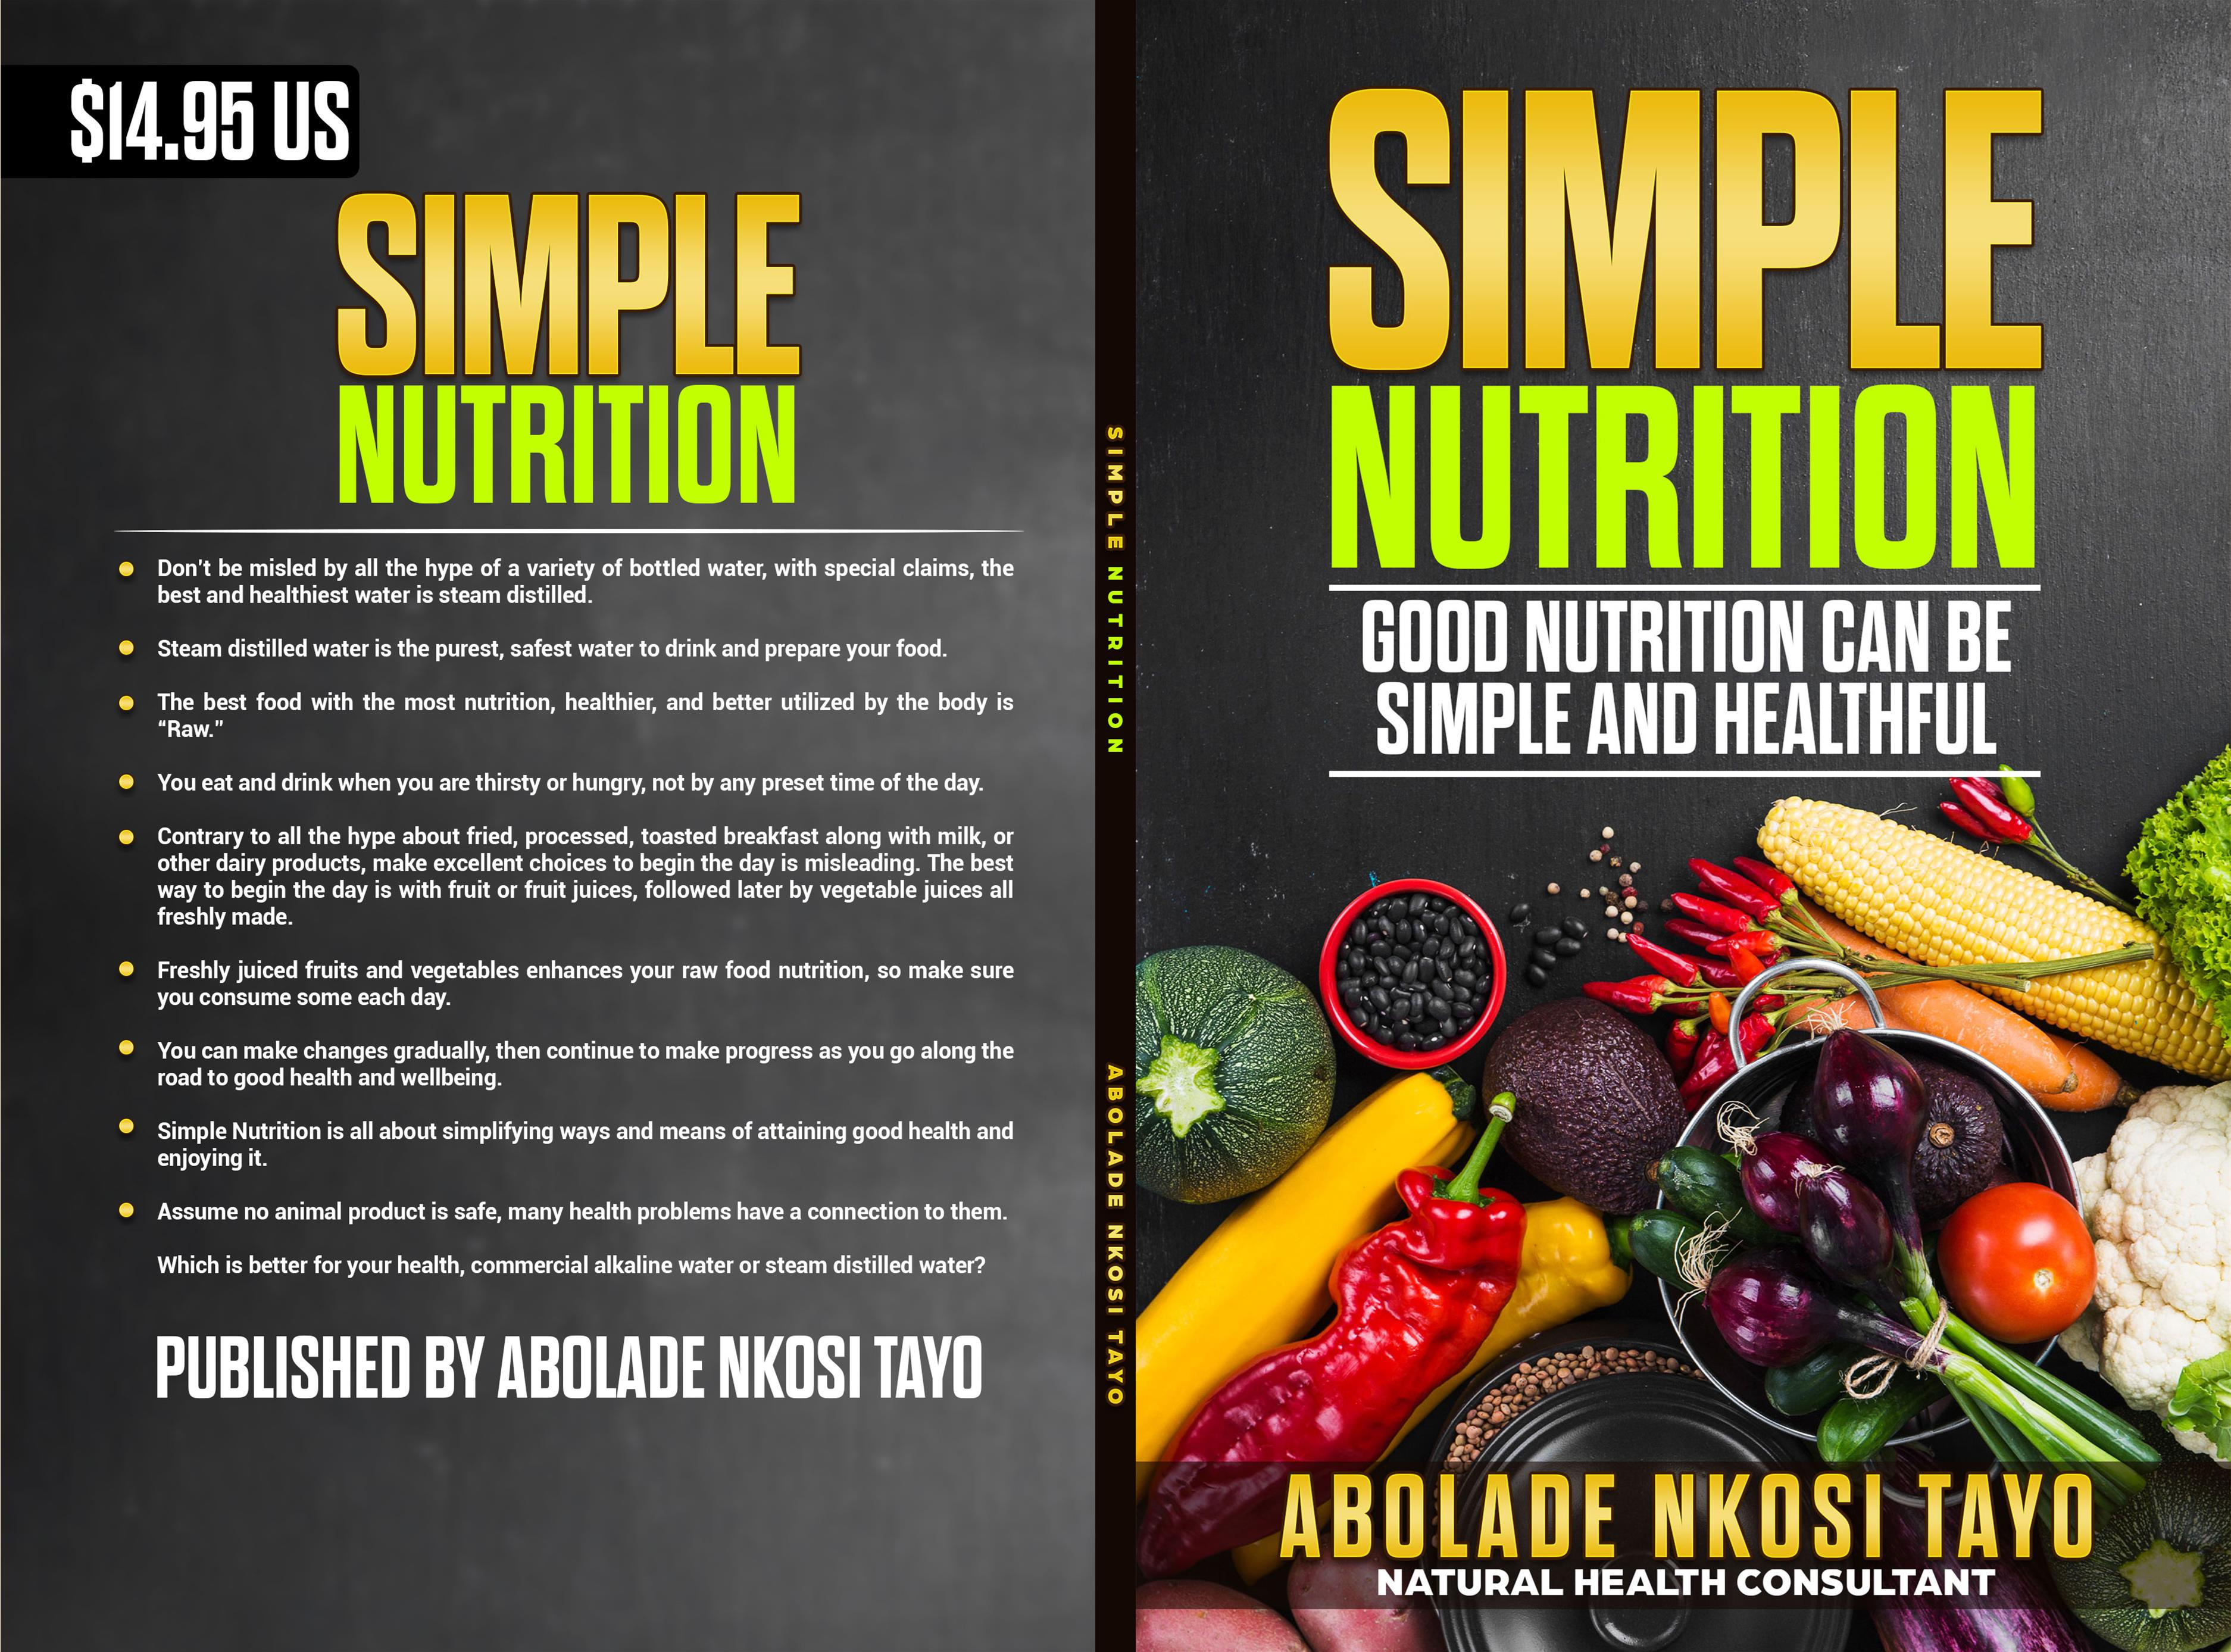 SIMPLE NUTRITION cover image